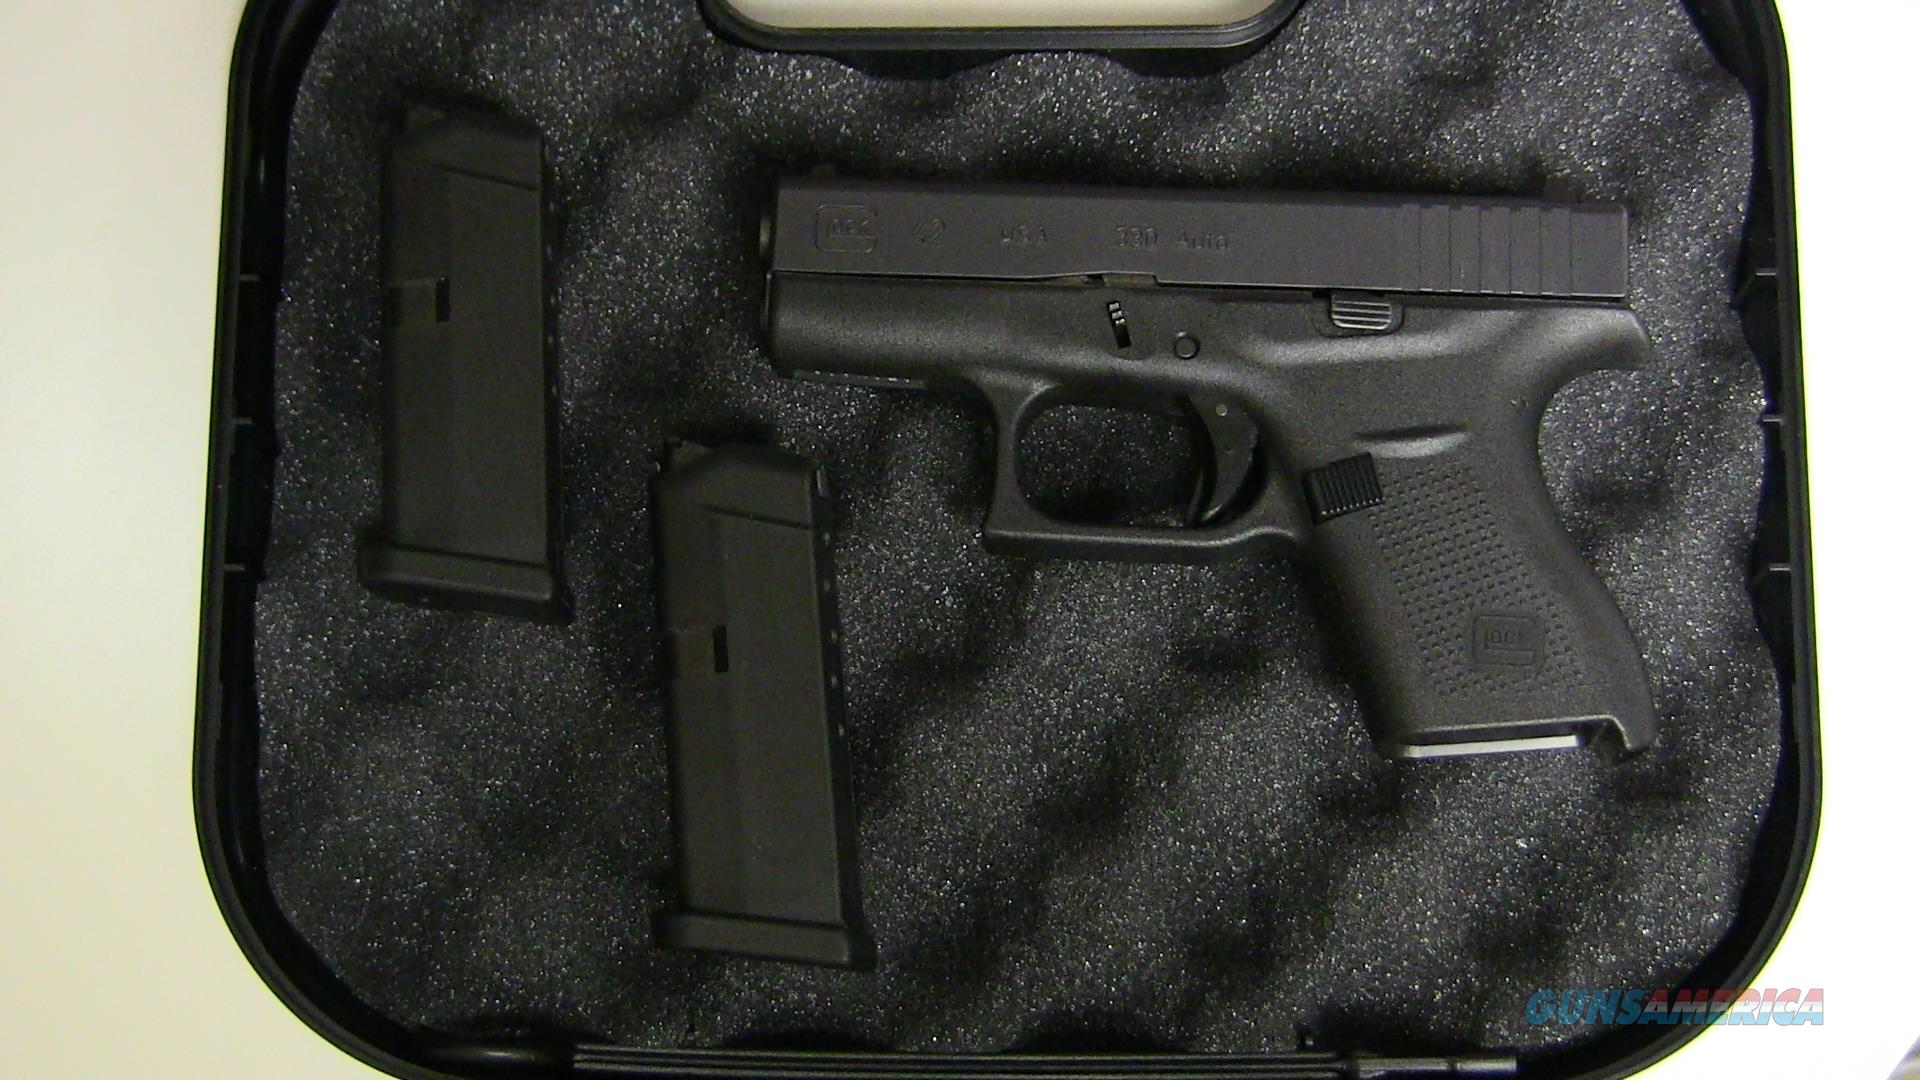 Glock 42 (.380 ACP) 6+1 with case and 2 mags  Guns > Pistols > Glock Pistols > 42